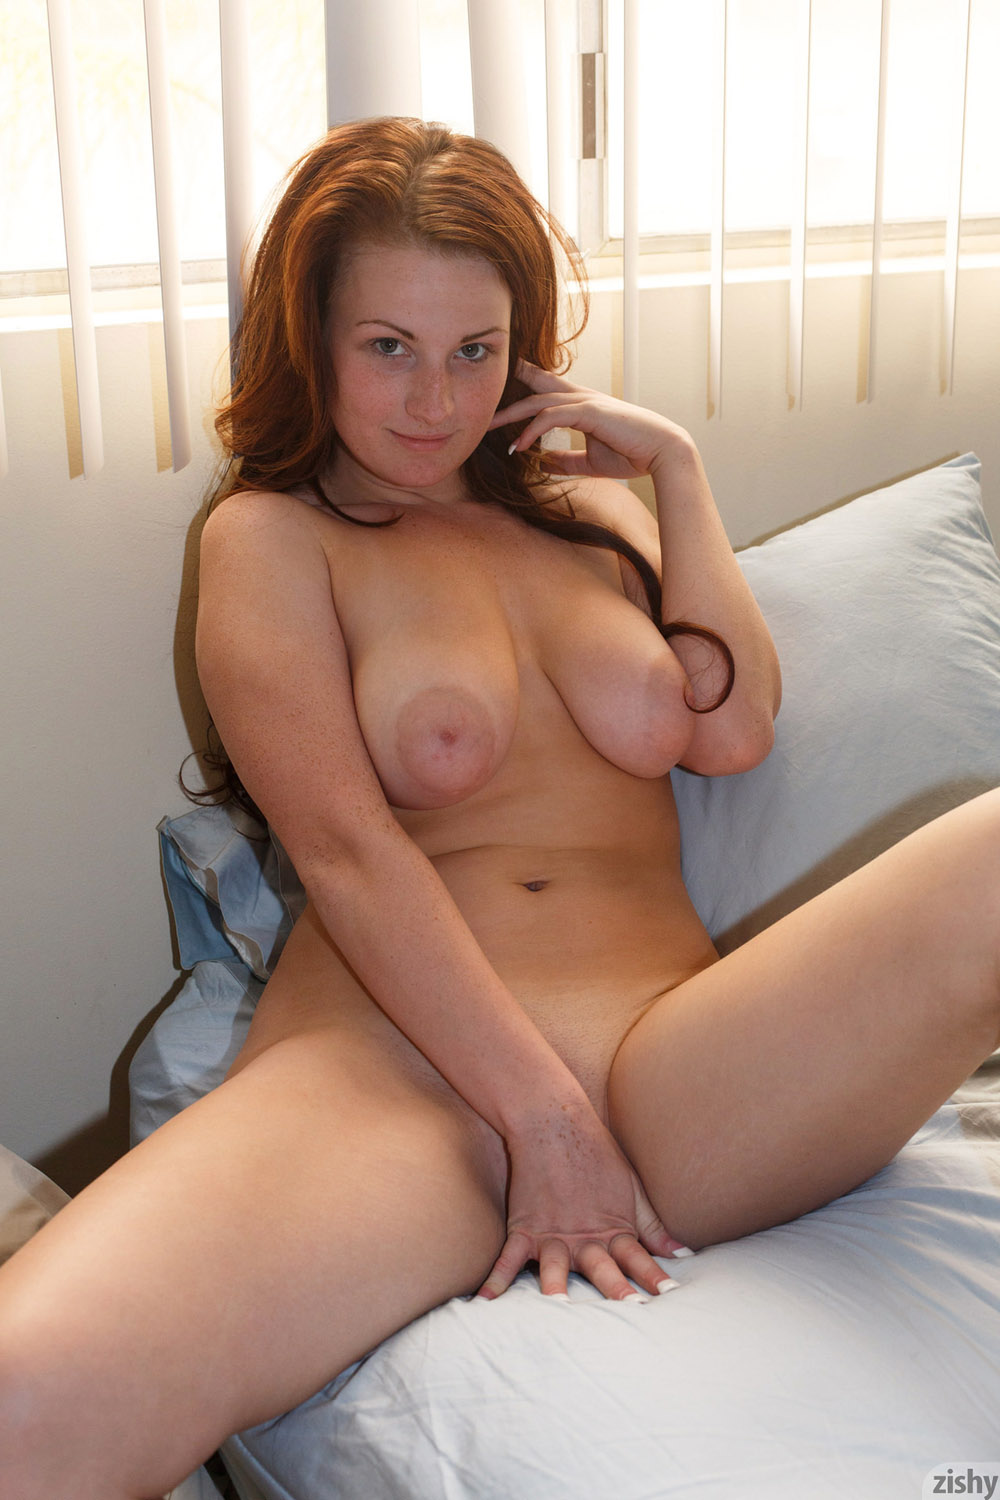 Showing what she going to do later 9